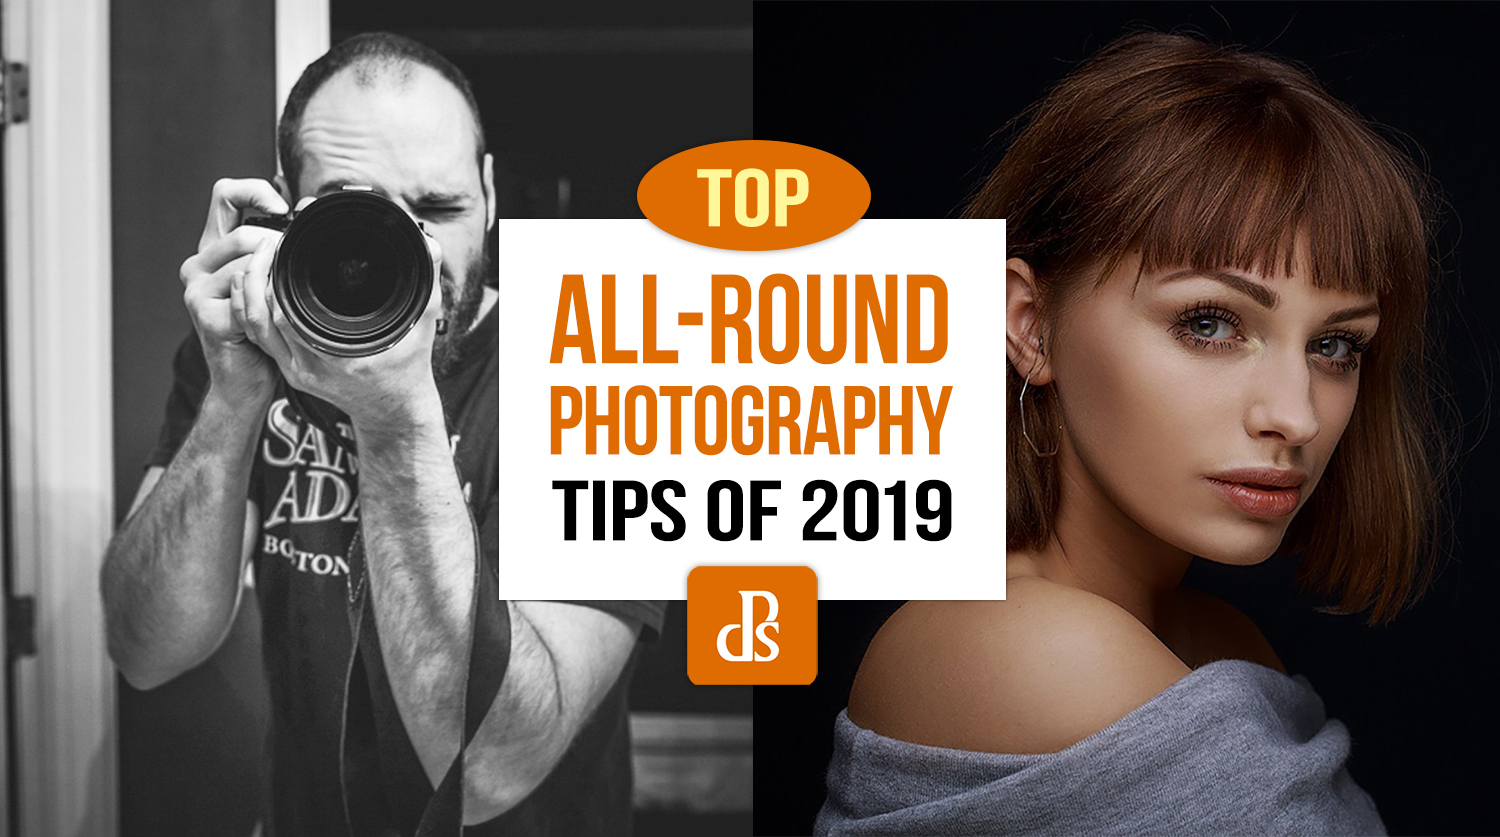 https://i2.wp.com/digital-photography-school.com/wp-content/uploads/2019/12/dps-top-photography-tips-2019.jpg?resize=1500%2C837&ssl=1